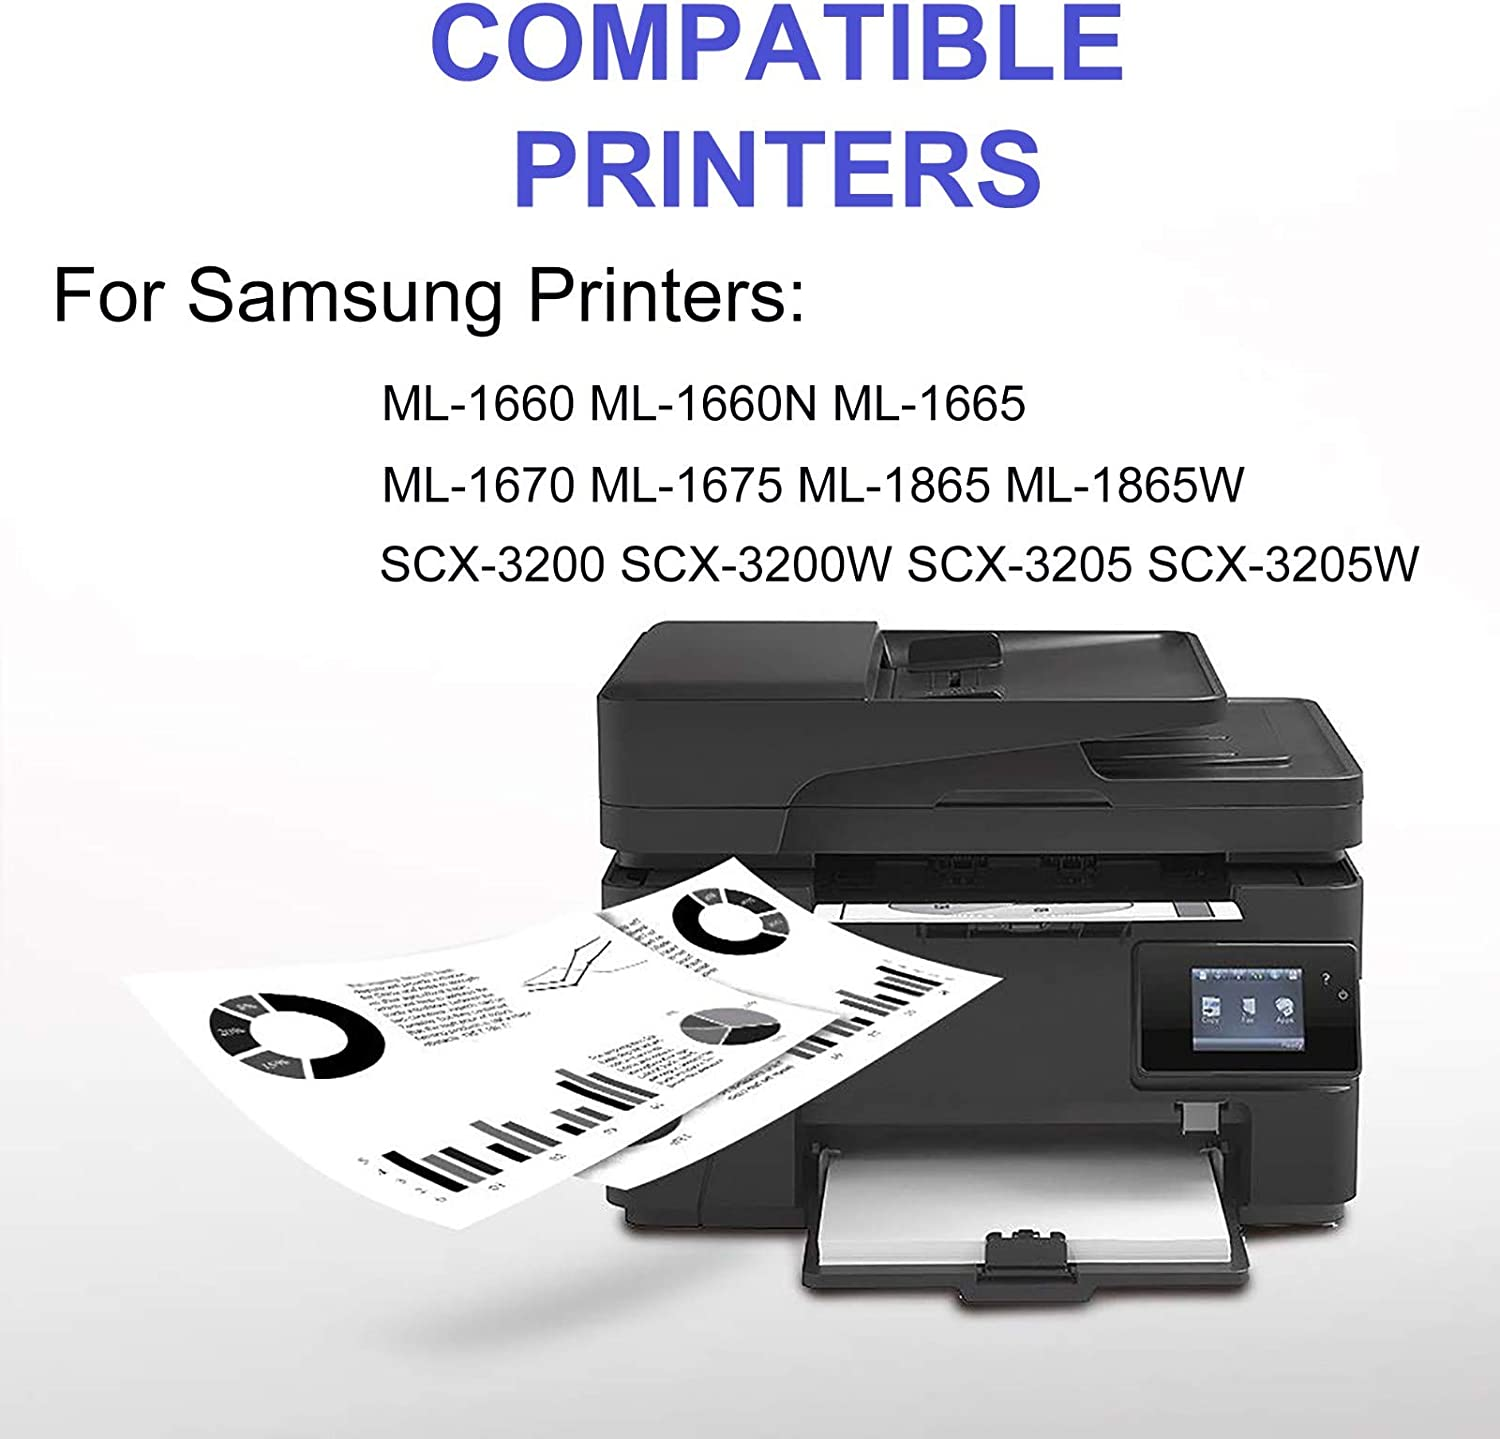 Black 6-Pack Compatible High Capacity ML-1660N ML-1665 ML-1670 ML-1865W Printer Toner Cartridge Replacement for Samsung MLT-D104S Printer Cartridge